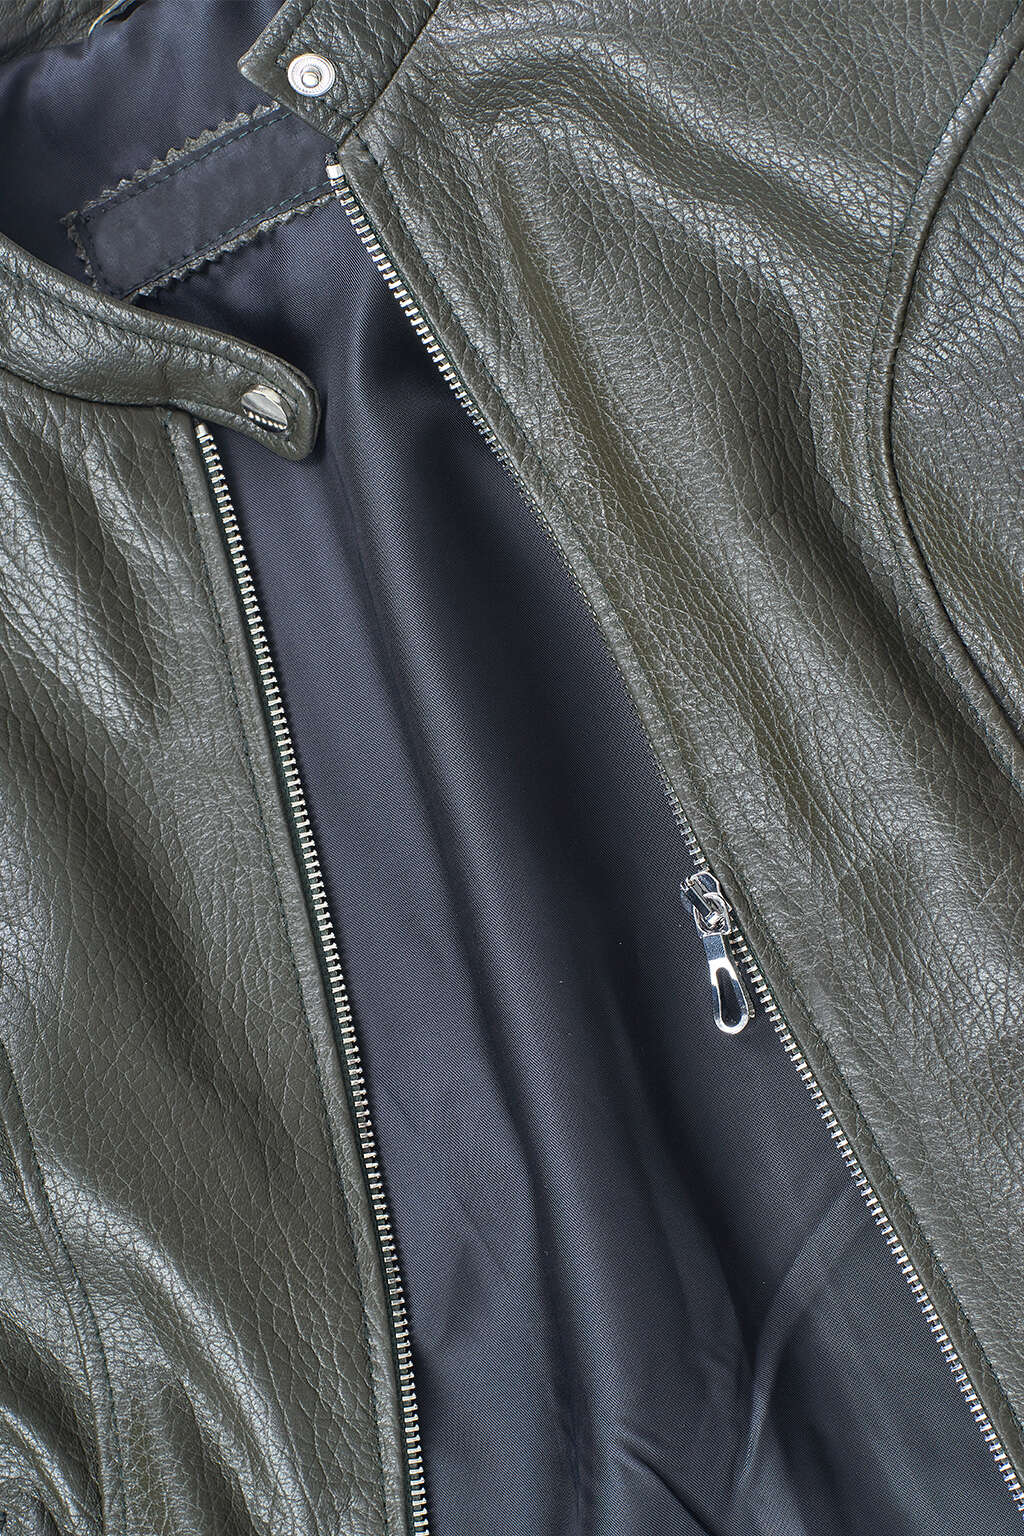 Zipper and Collar Detail of Deep Olive Green Classic High-Collared Leather Jacket